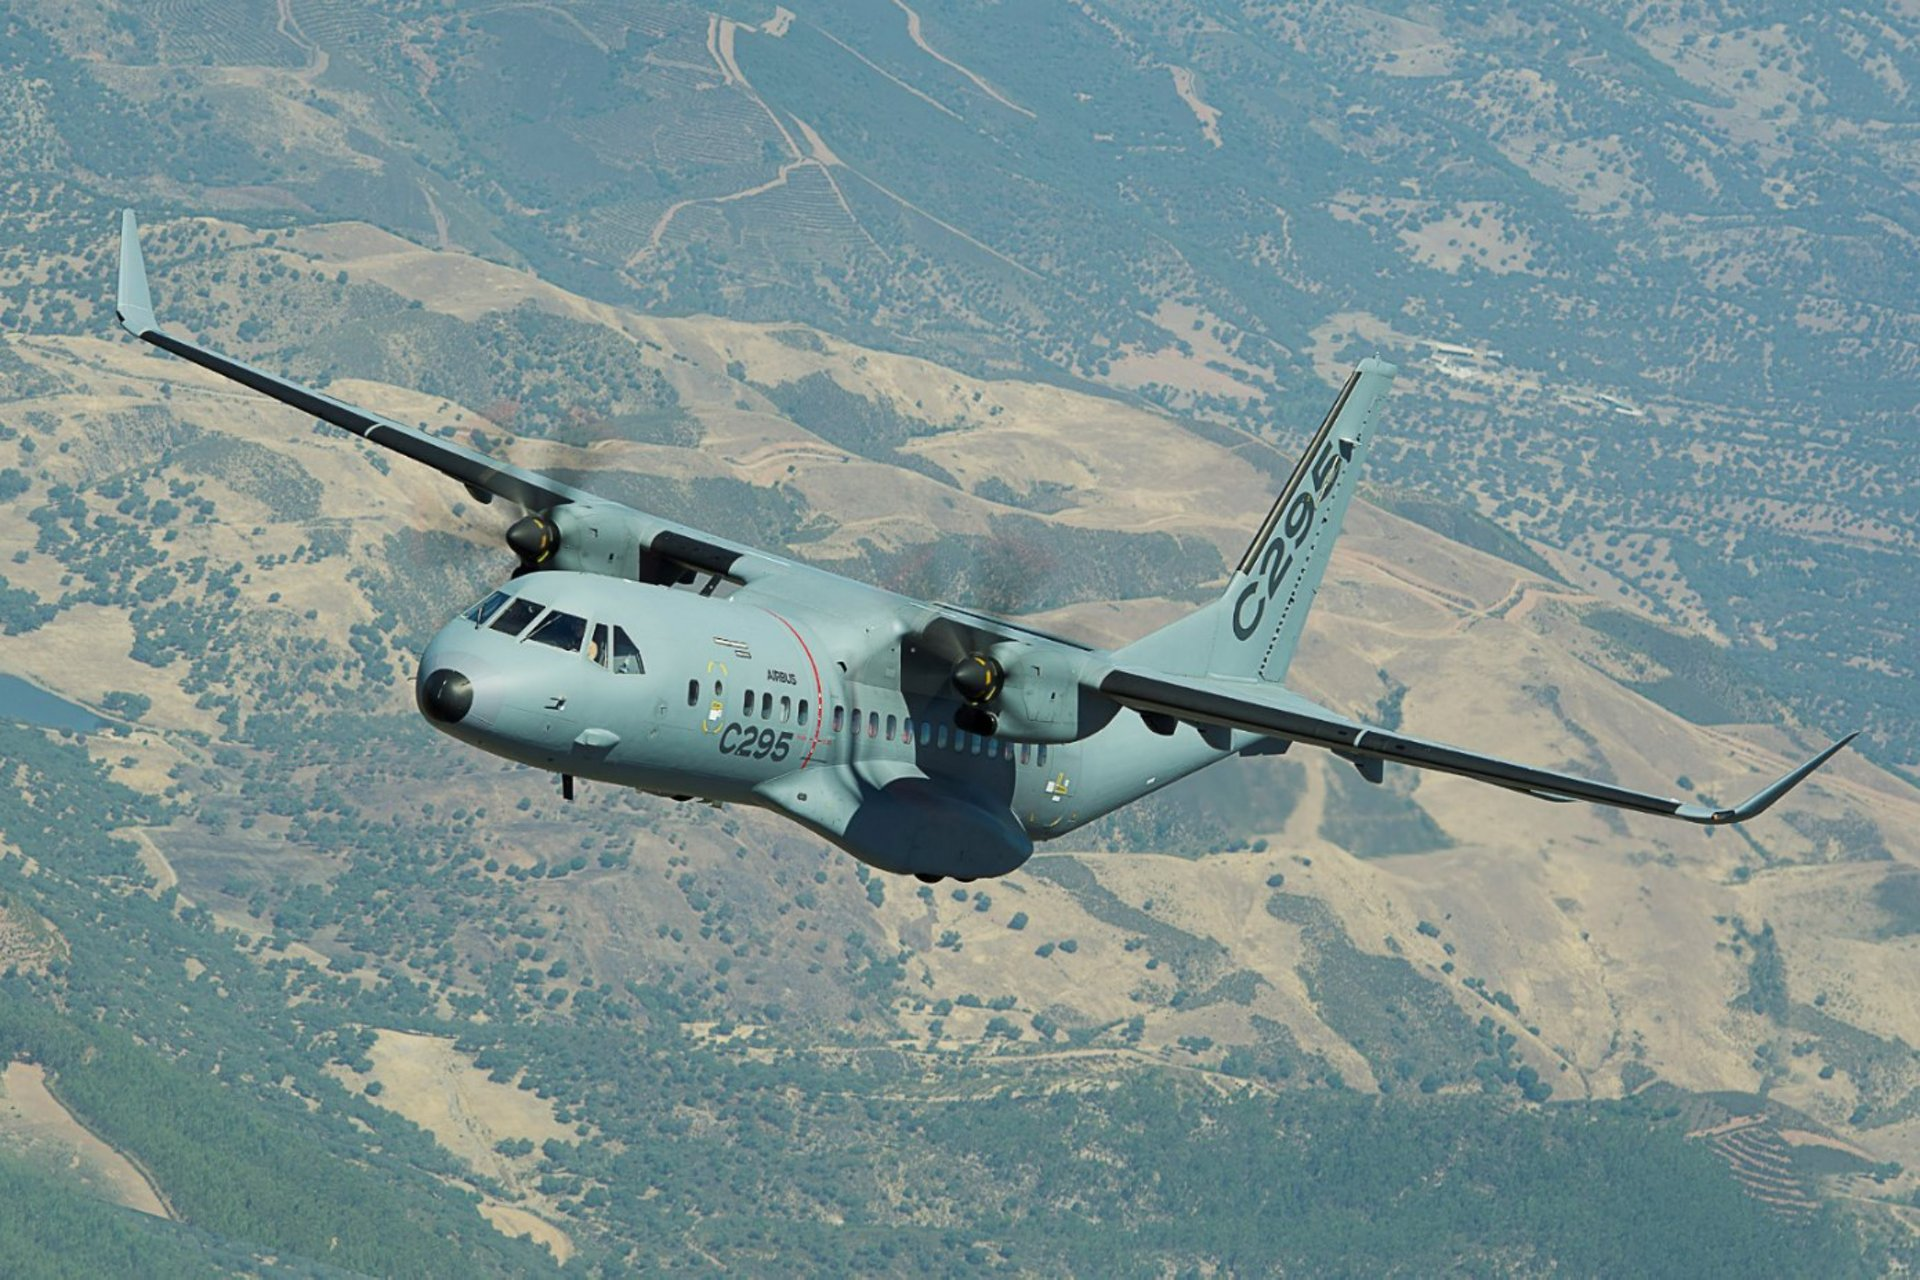 Airbus will showcase its best-in-class military products and cutting-edge defence technologies at the DefExpo airshow between February 5 and 8, 2020, in Lucknow, Uttar Pradesh, India. Airbus' exhibits at the show will demonstrate its capabilities and commitment to kick-start a defence industrial base in the country.